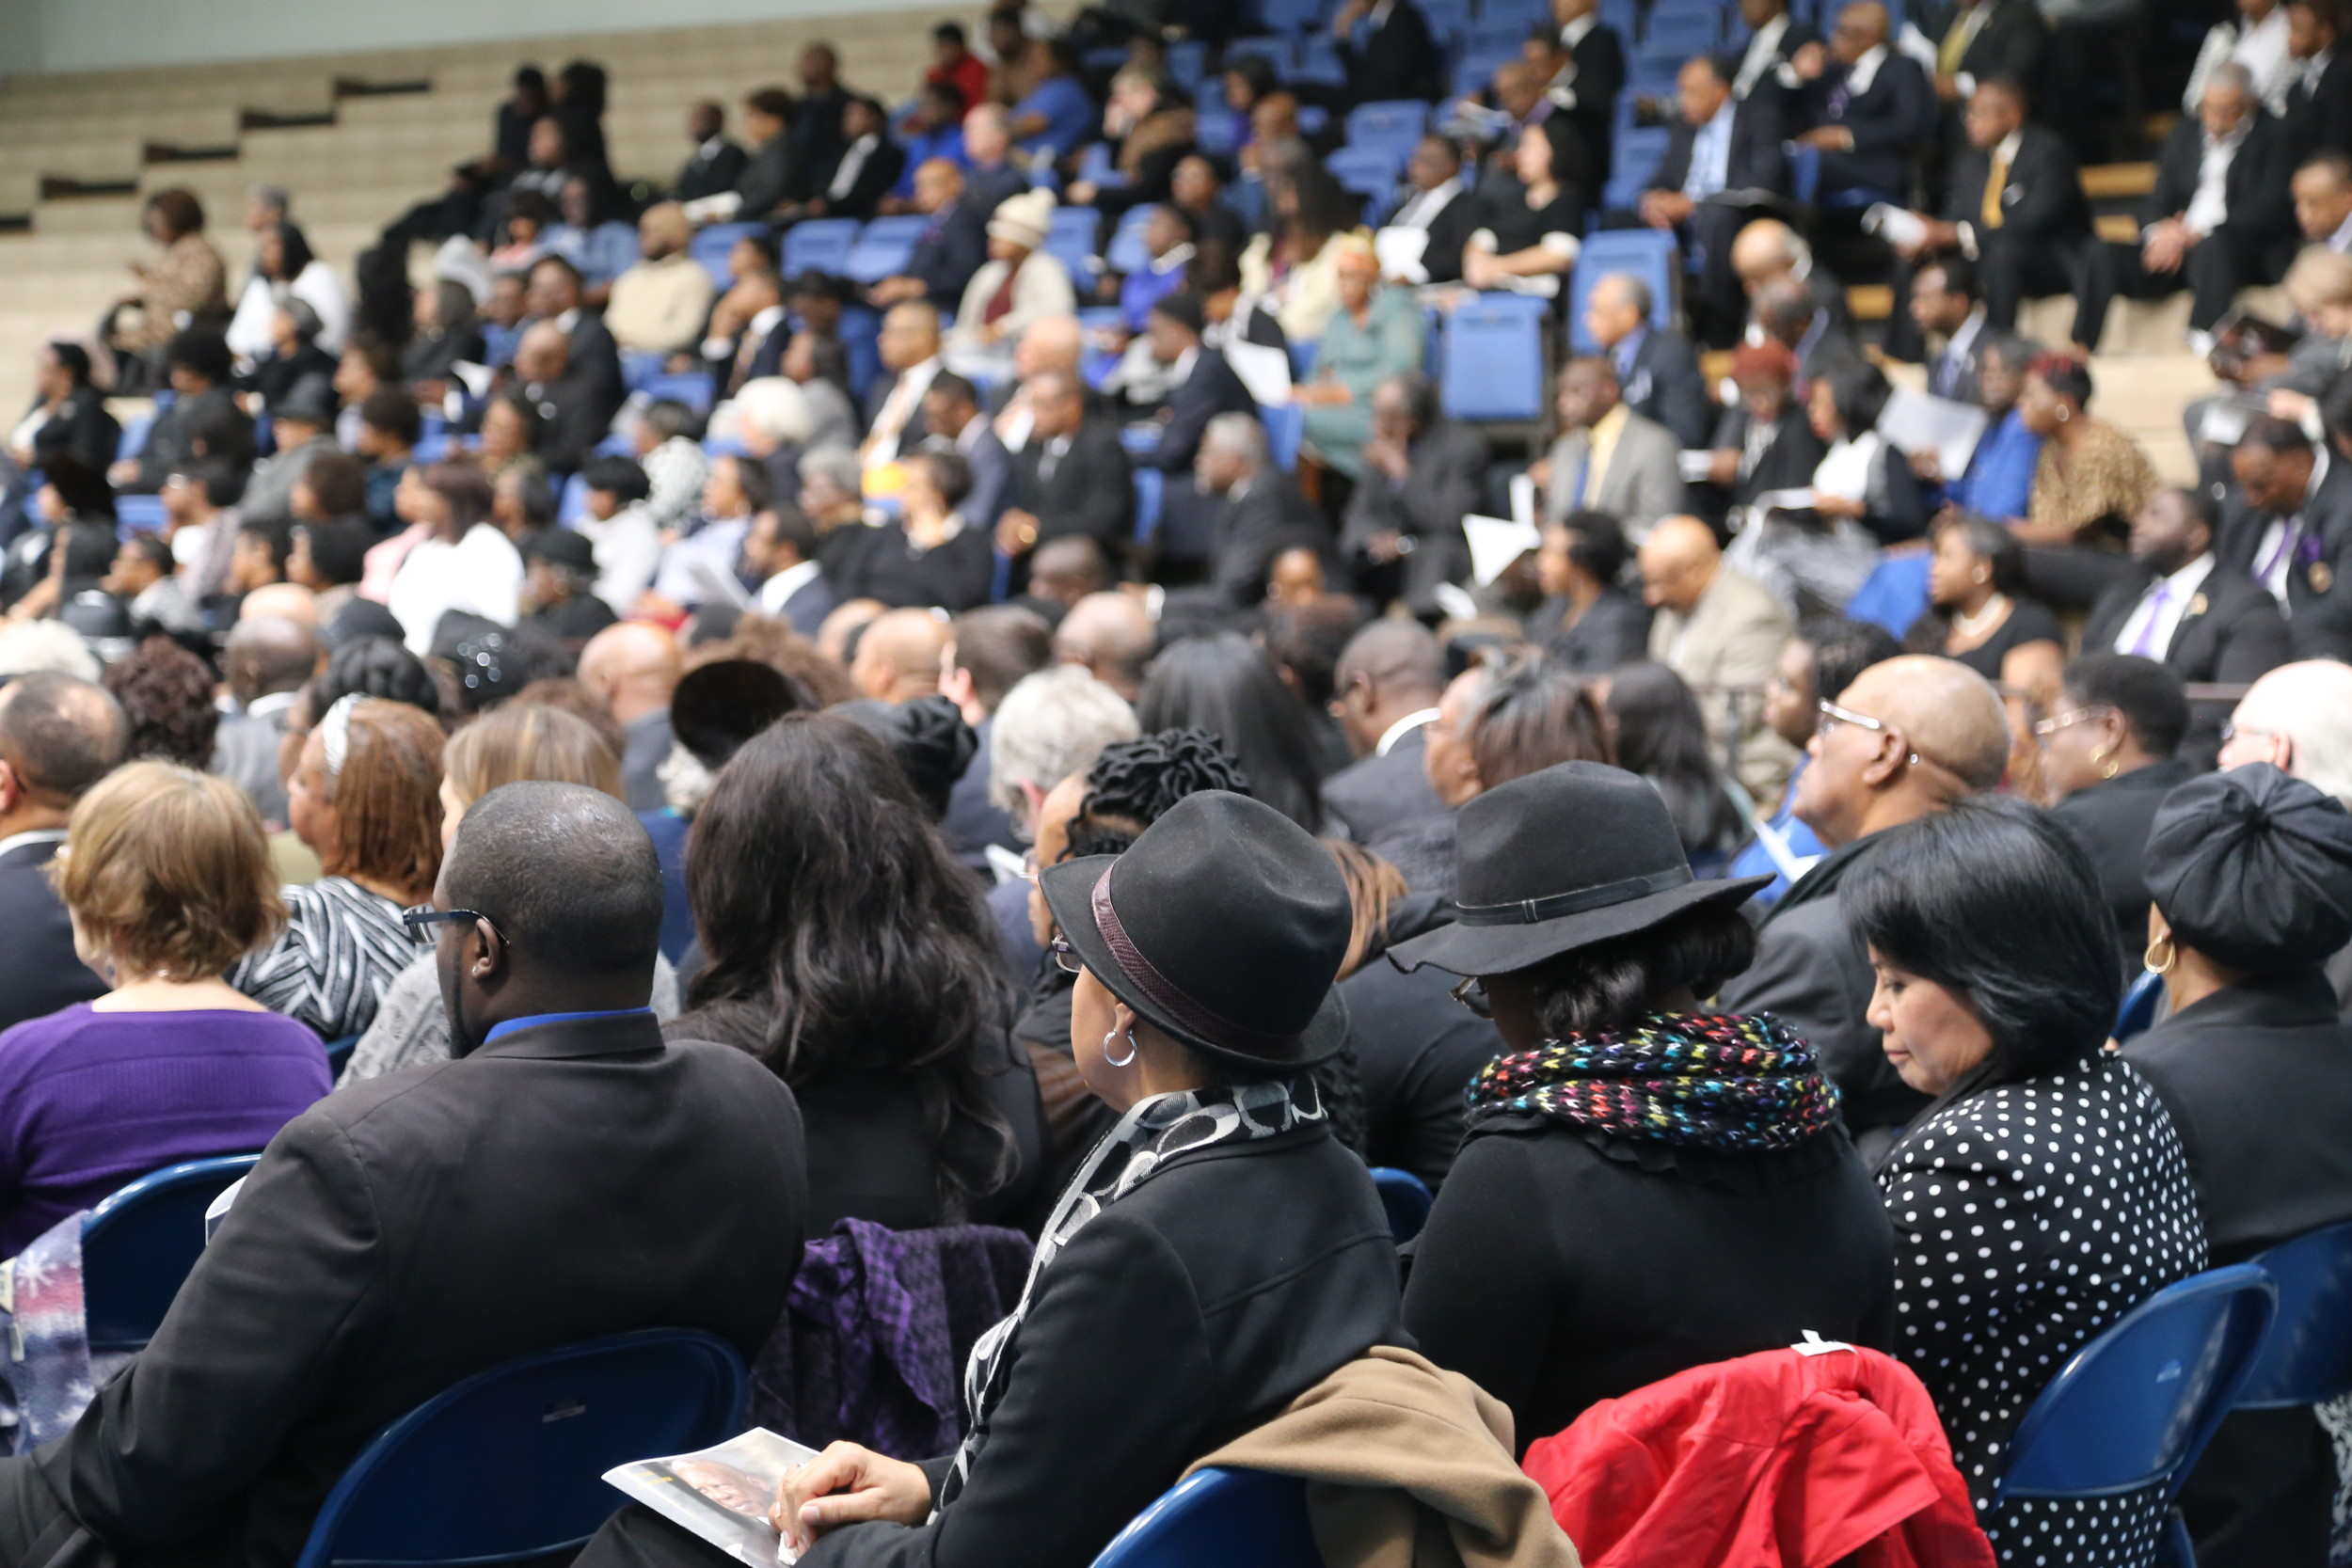 PHOTO BY ADRIENNE SARVISHundreds of community members, students and alumni attend a service for Luns C. Richardson, the longest-serving president of Morris College on Friday.